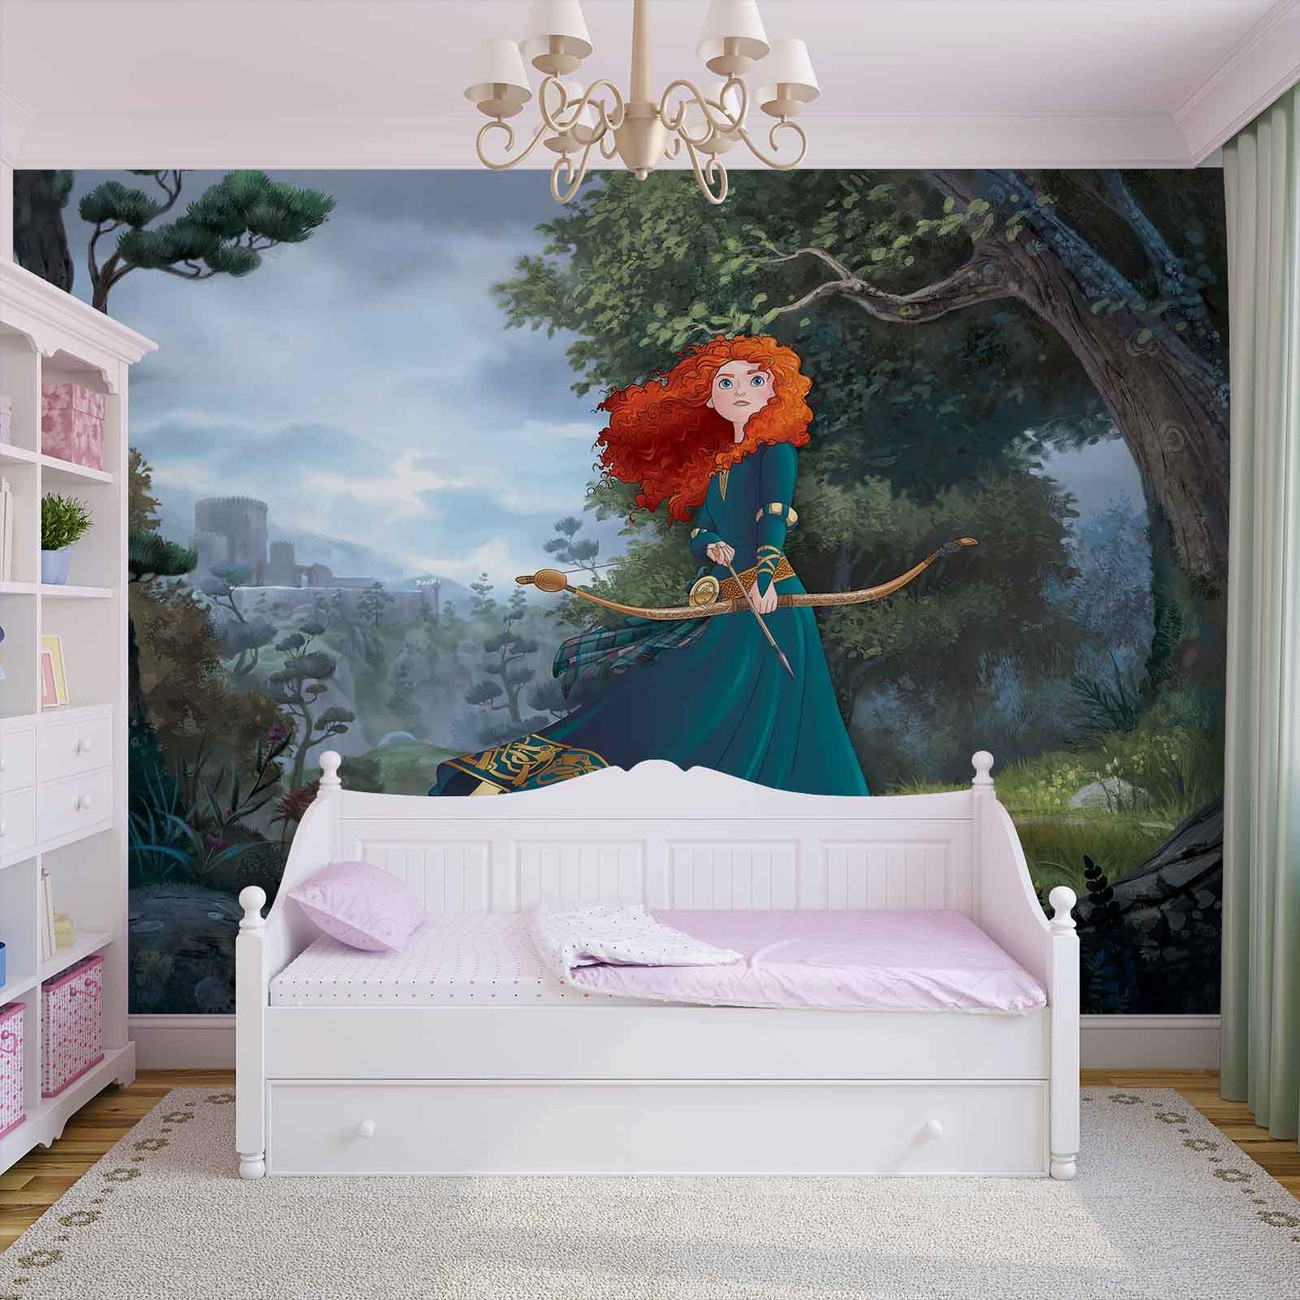 Disney princesses merida brave wall paper mural buy at for Disney princess wallpaper mural uk